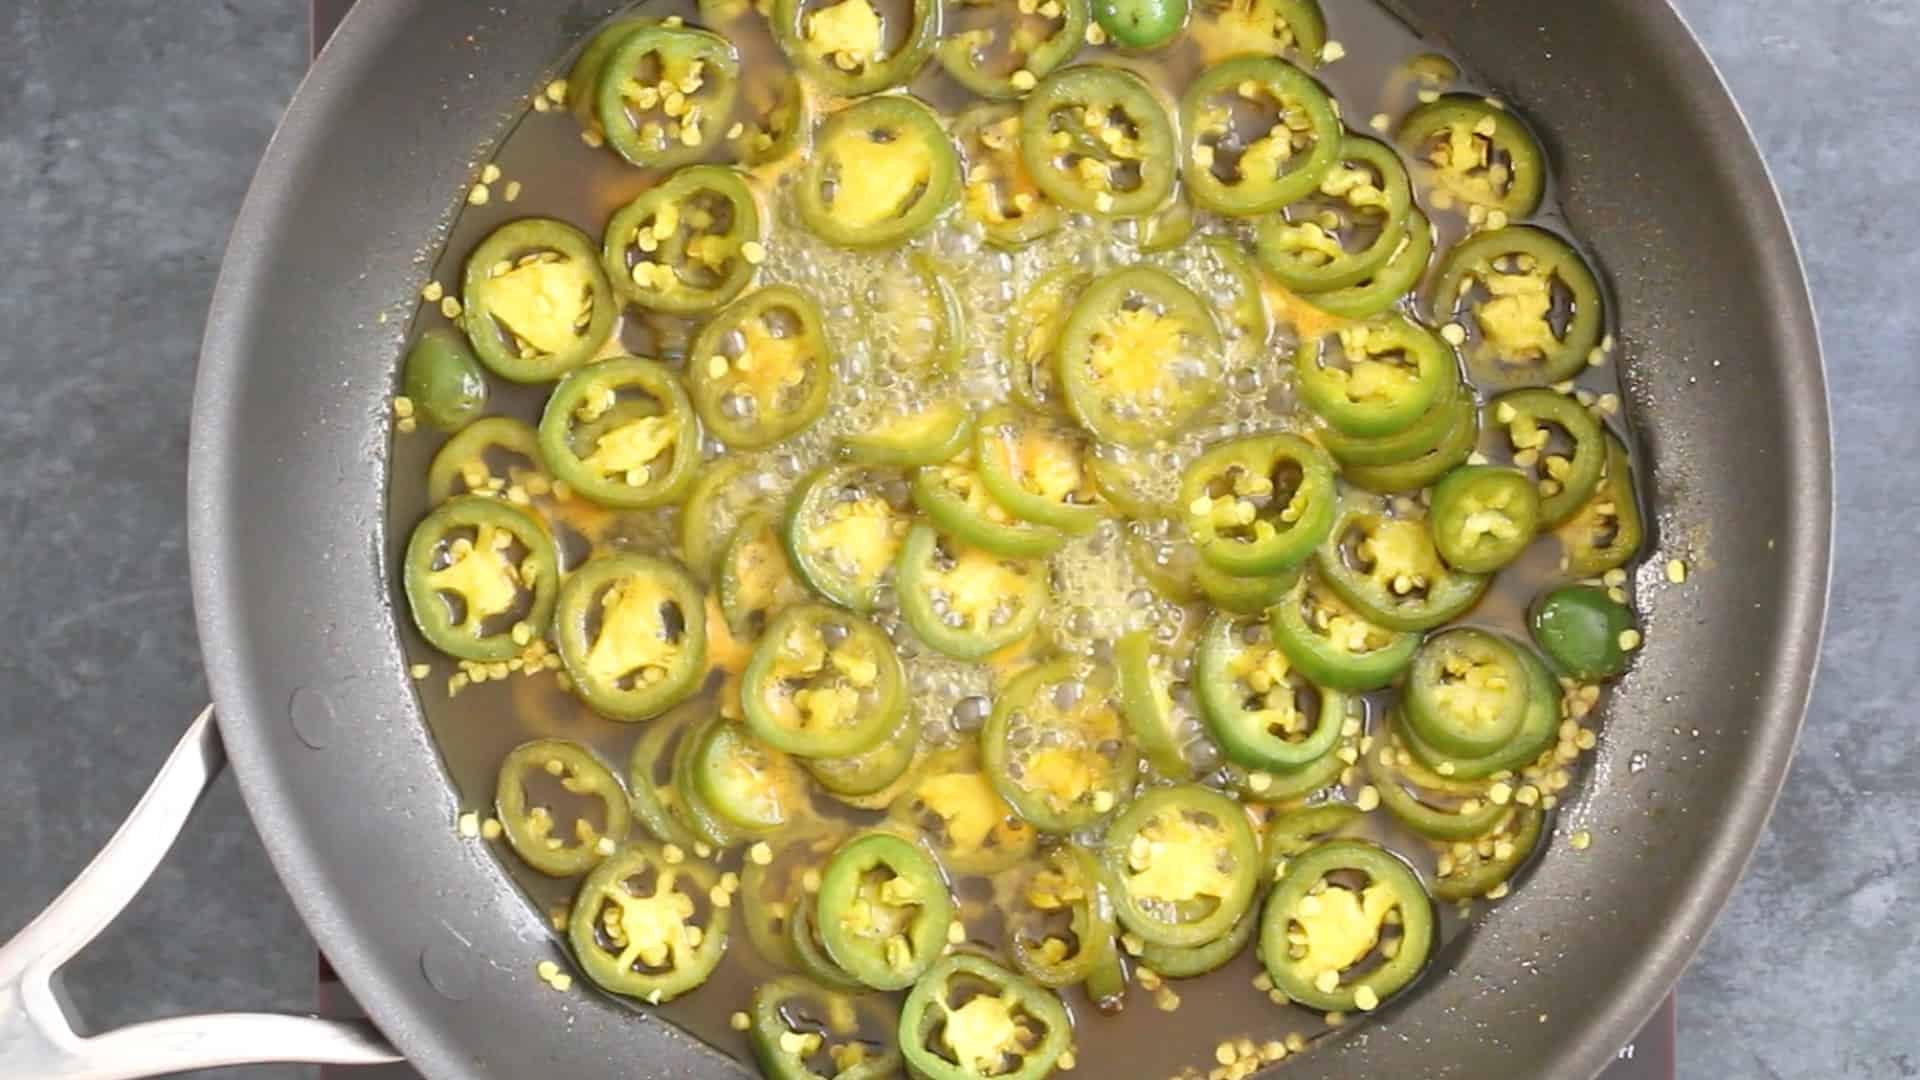 Simmering jalapeno peppers in a pan to make Candied Jalapenos (Cowboy Candy)